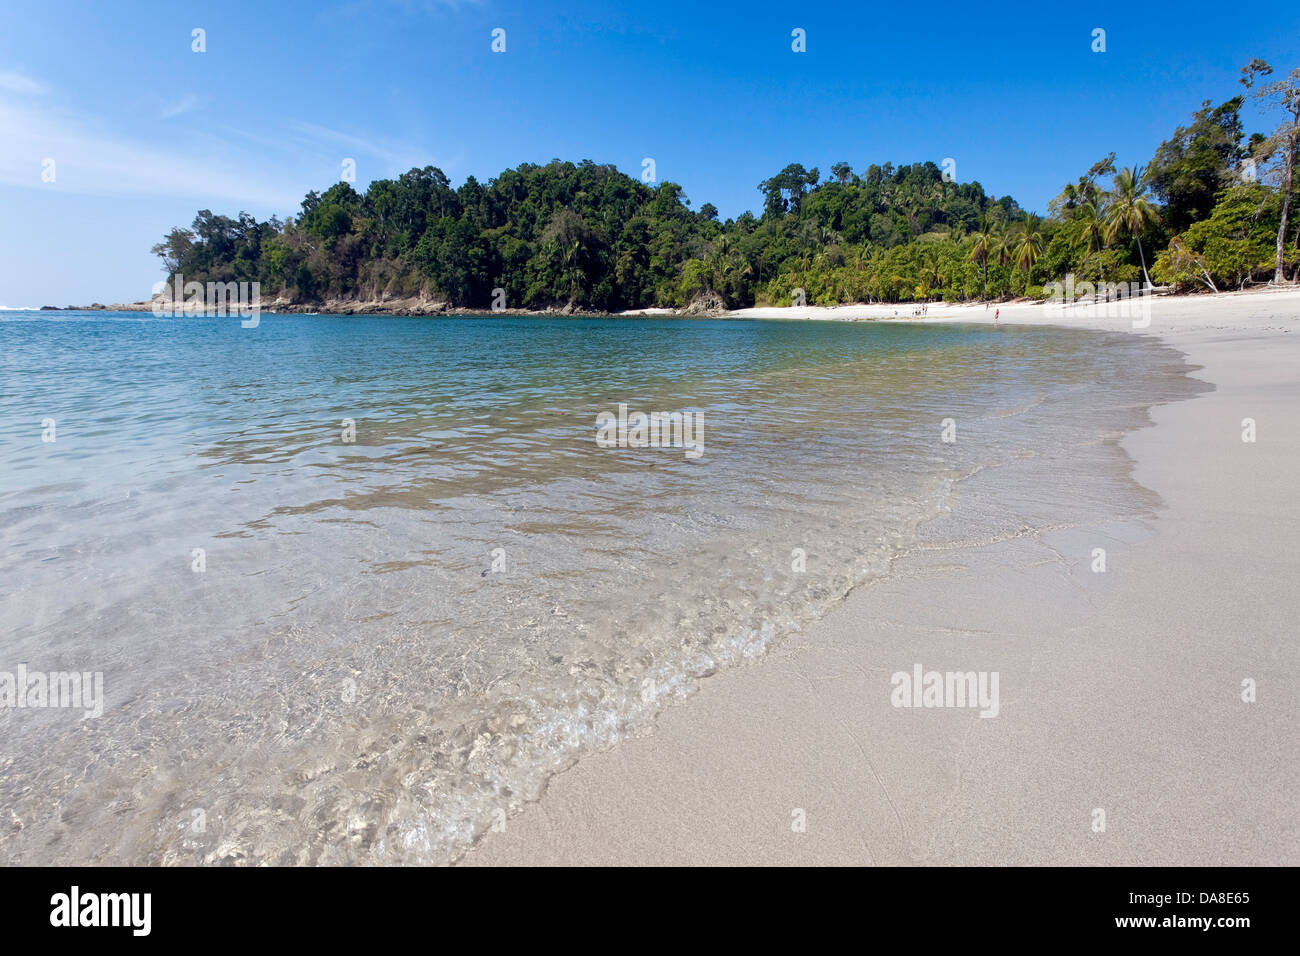 Plage vierge, Parc National Manuel Antonio, Costa Rica Photo Stock